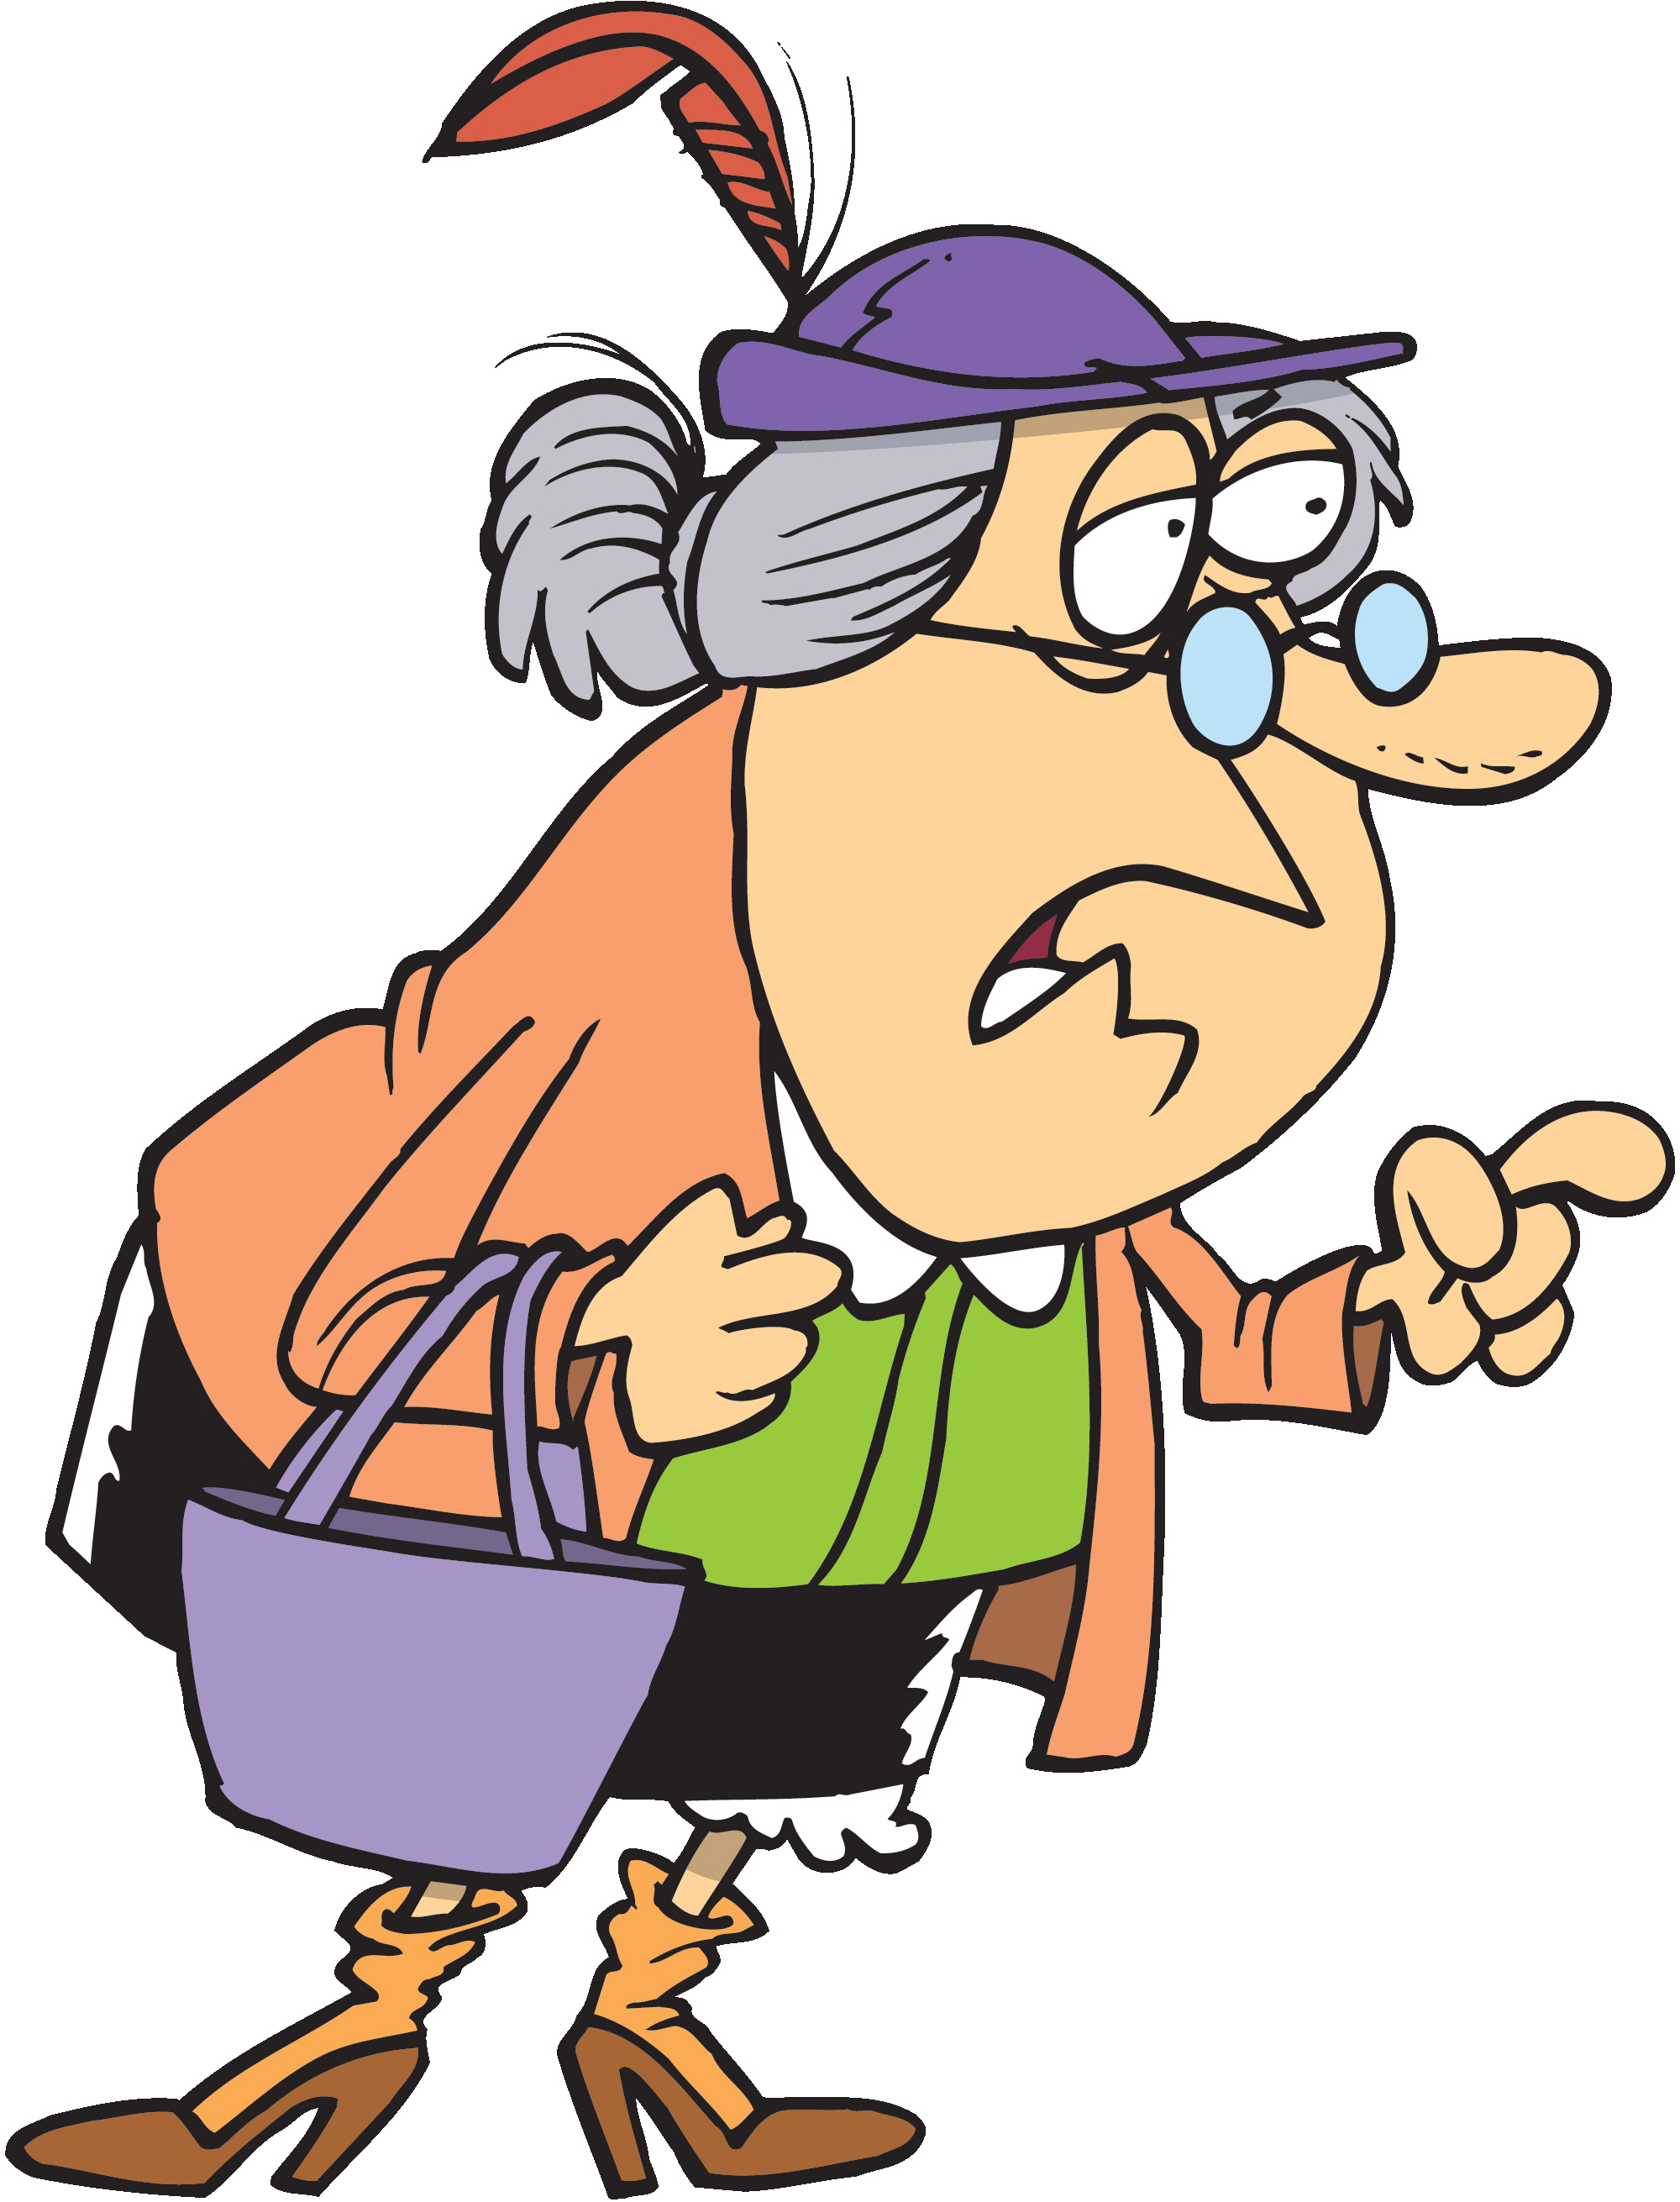 Images For > Nice Old Lady Cartoon